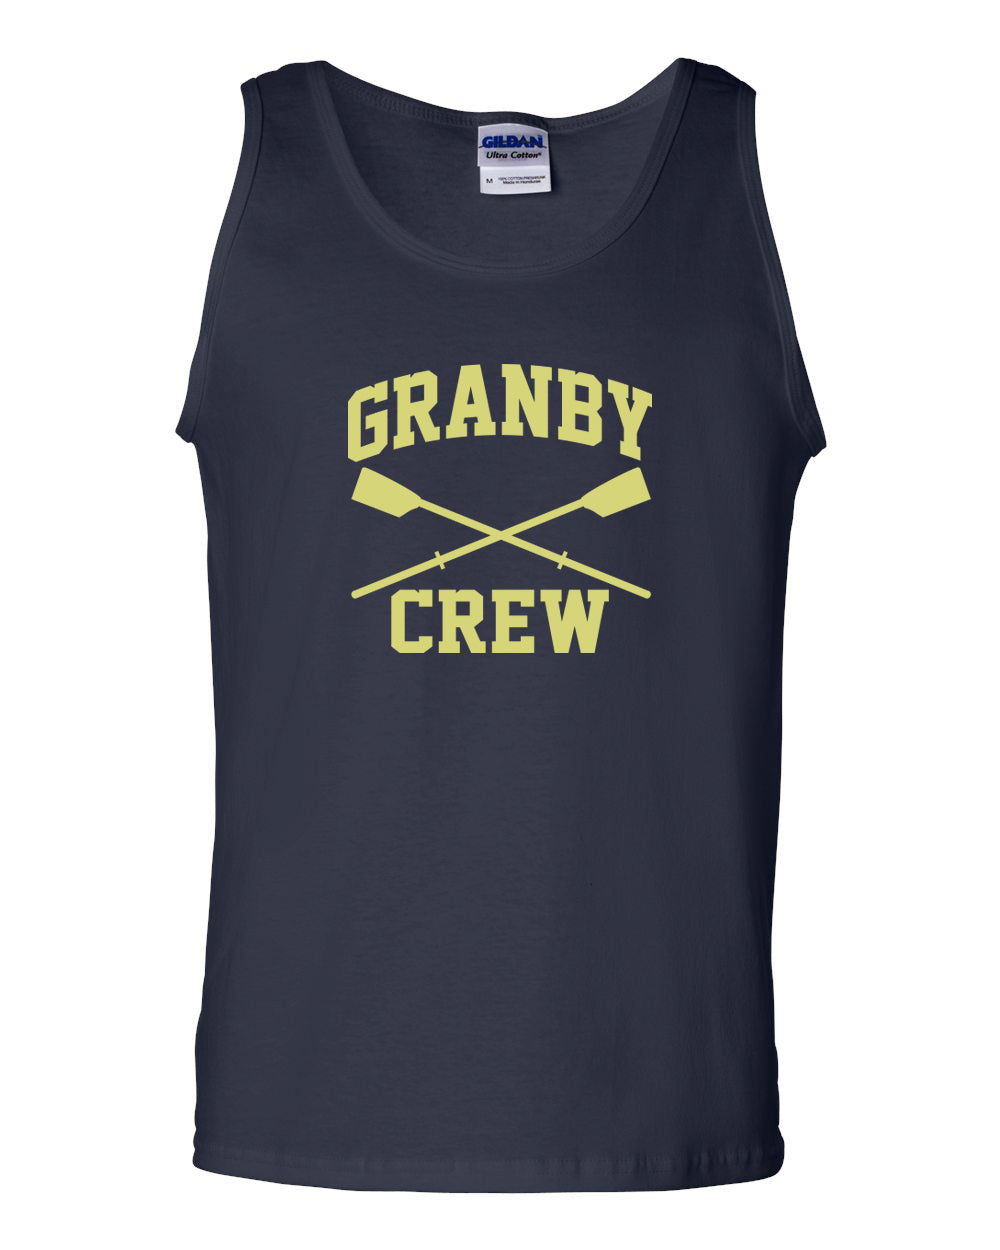 100% Cotton Granby Crew Tank Top